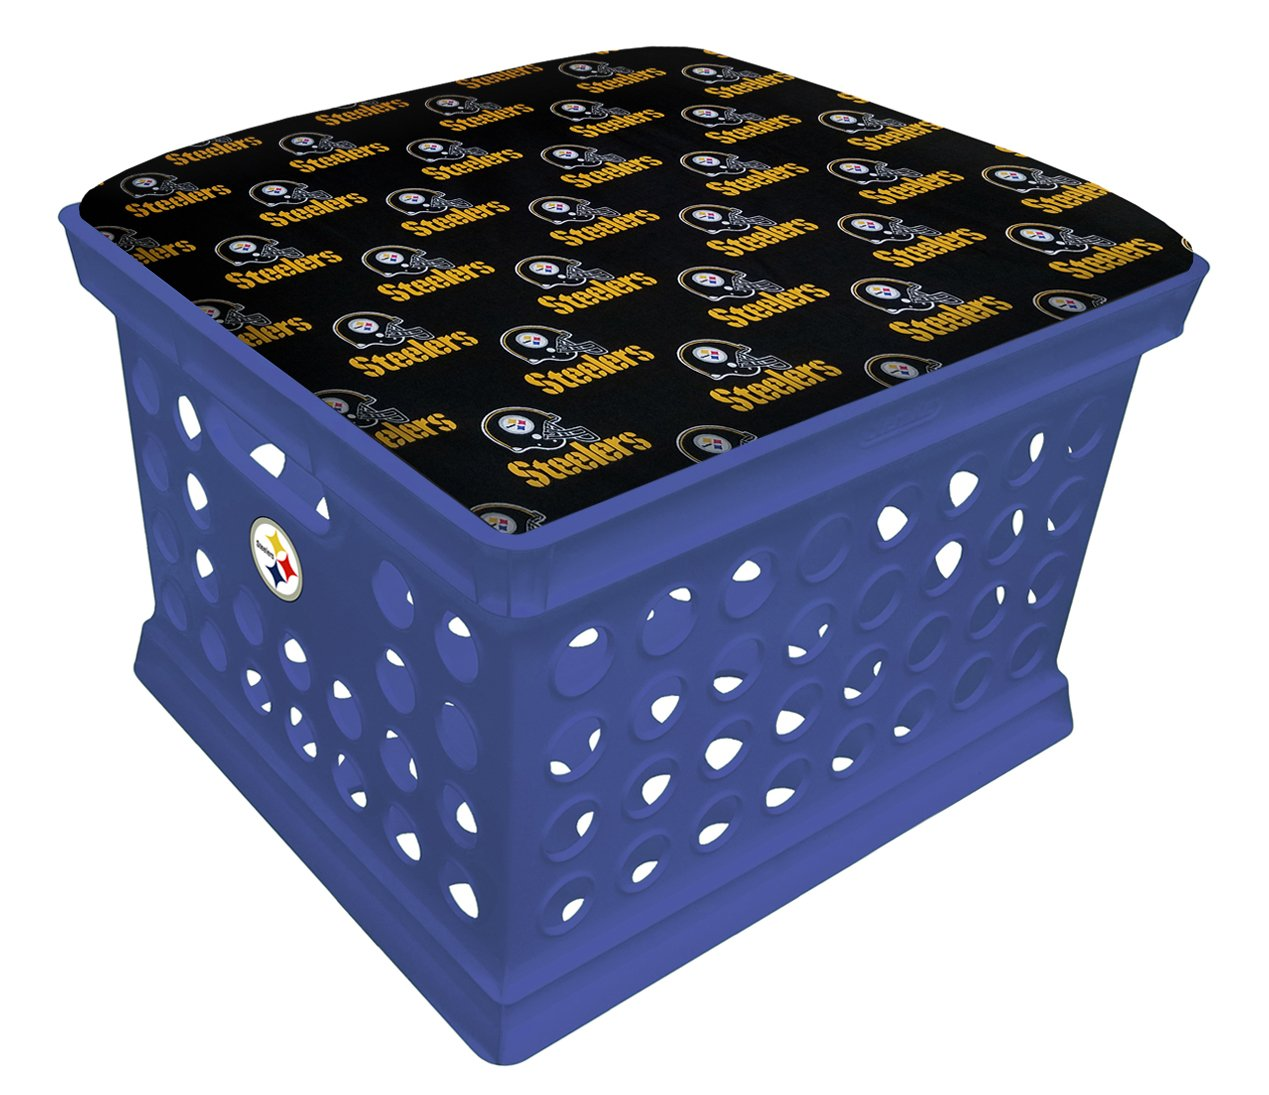 Blue Utility Crate Storage Container Ottoman Bench Stool for Office/Home/School/Preschools with Your Choice of a Football Team Seat Cushion, Decal and a Free Flashlight! (Black Steelers on Black) by The Furniture Cove (Image #1)